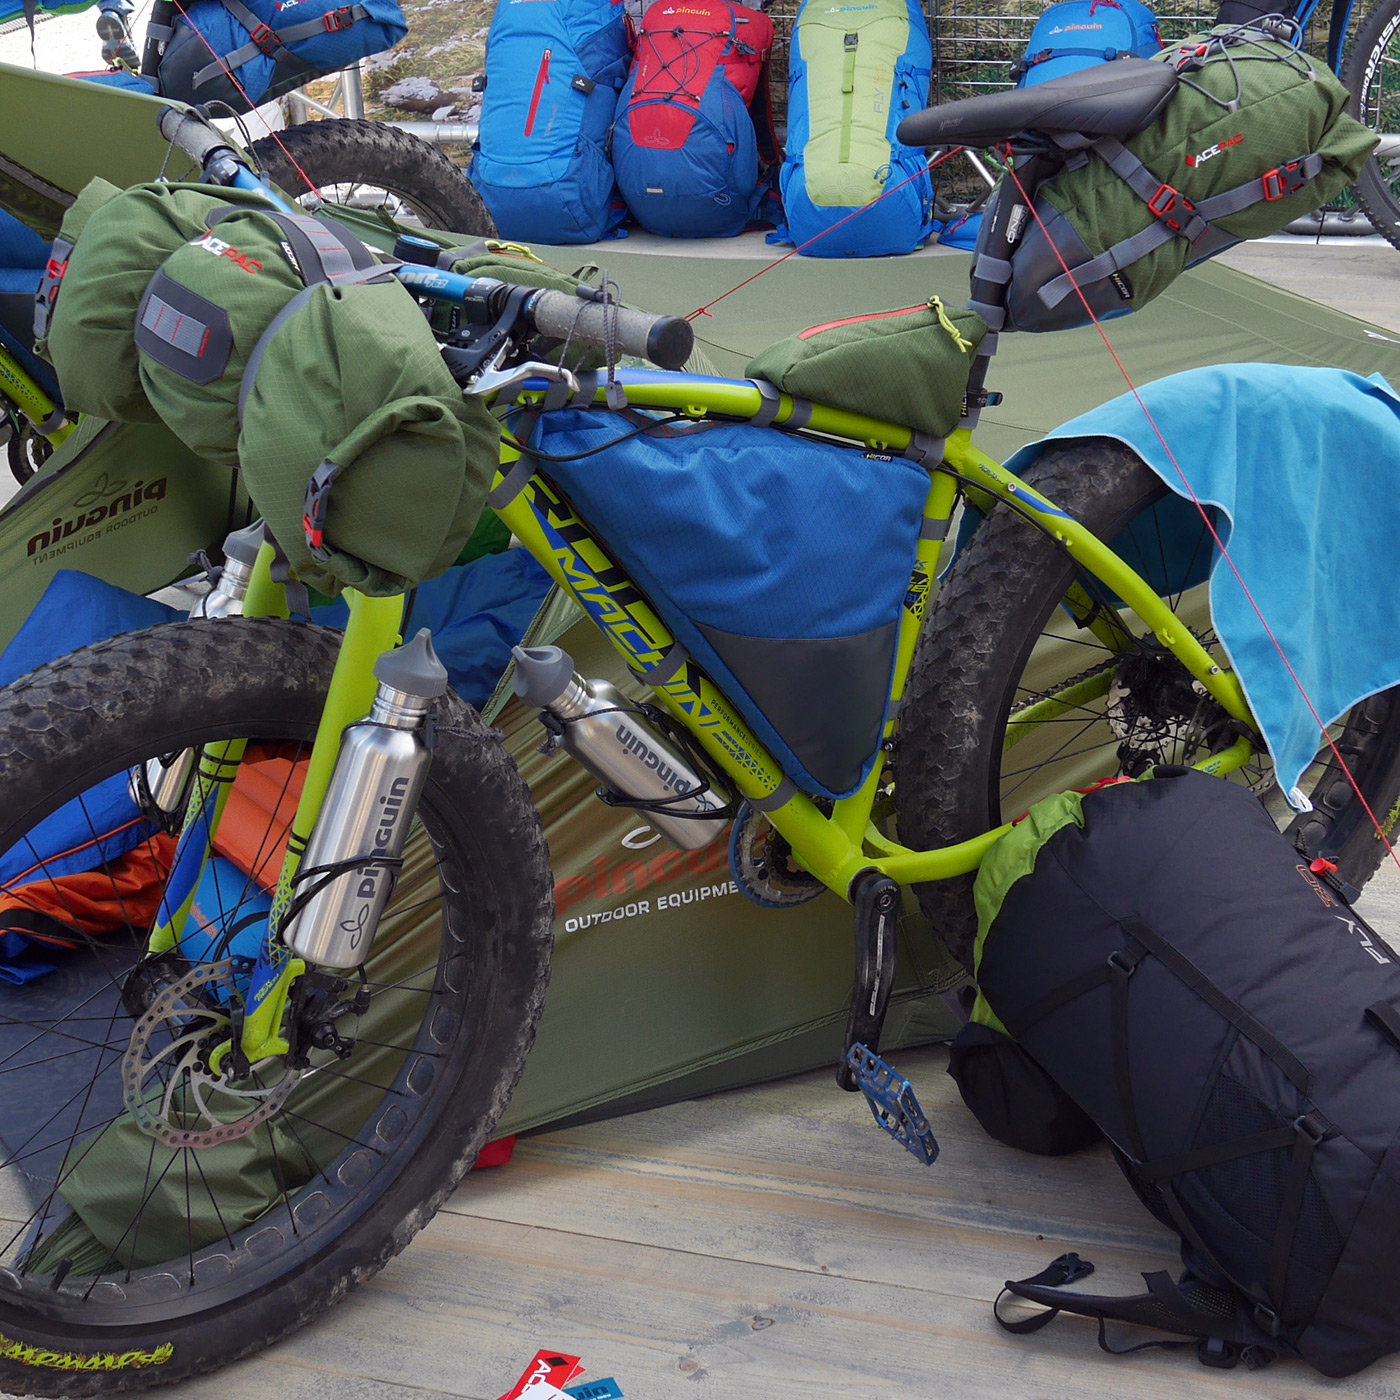 Eb15 bikepacking mountainbiking and touring bag round Outdoor bicycle